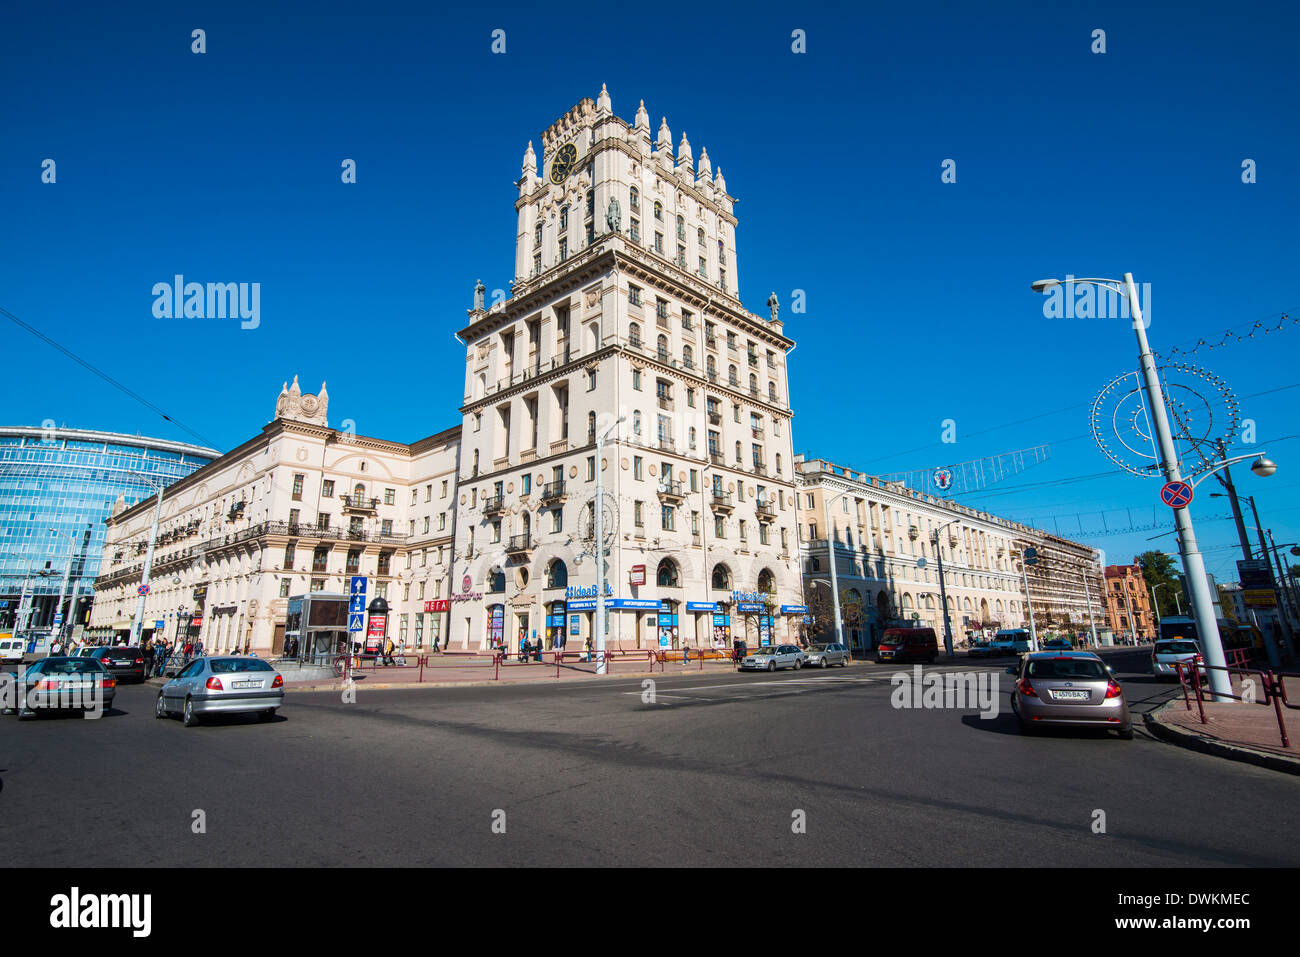 Stalinist architecture in Minsk, Belarus, Europe Stock Photo